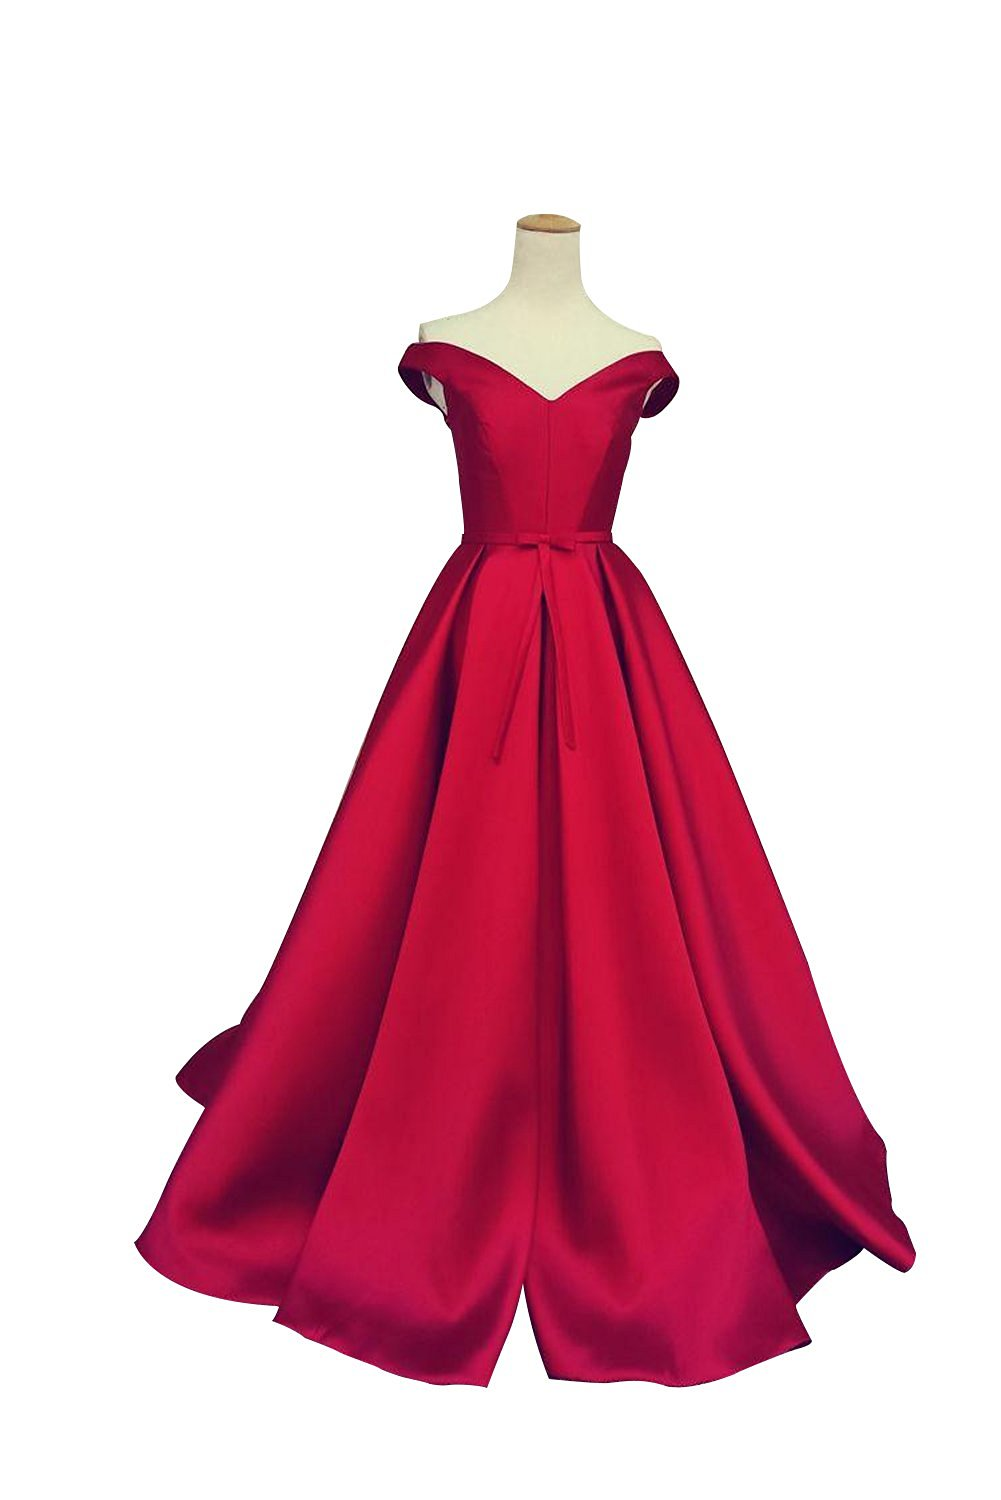 a-line red ball gown